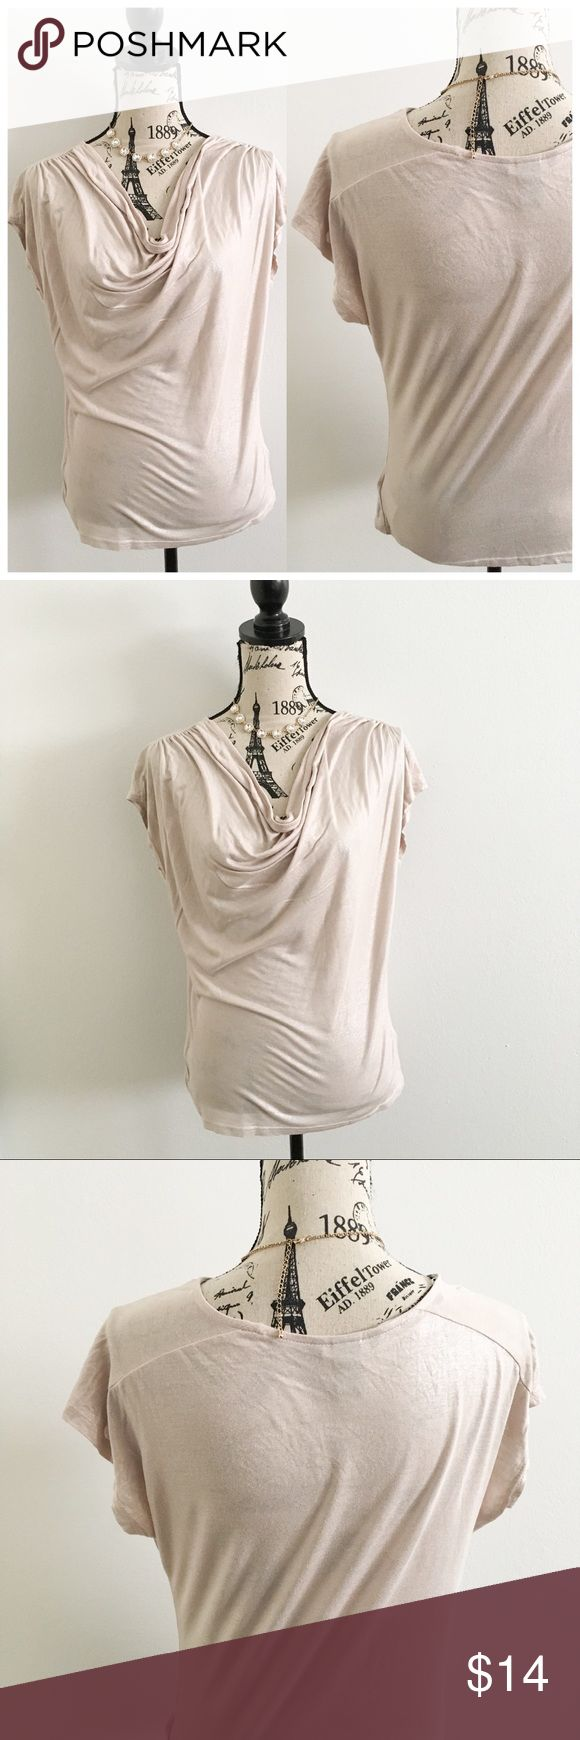 """H&M Champagne Shimmery Top ✦   ✦{I am not a professional photographer, actual color of item may vary ➾slightly from pics}  ❥chest:20.5"""" ❥waist:18"""" ❥length:22.5"""" ❥sleeves:7.5"""" ➳material/care:viscose/machine wash ➳fit:true in my opinion/fabric has some give to it  ➳condition:gently used   ✦20% off bundles of 3/more items ✦No Trades  ✦NO HOLDS ✦No lowball offers/sales are final  ✦‼️BE A RESPONSIBLE BUYER PLS ASK QUESTIONS/USE MEASUREMENTS TO MAKE SURE THIS WILL WORK FOR {YOU} BEFORE PURCHASING…"""